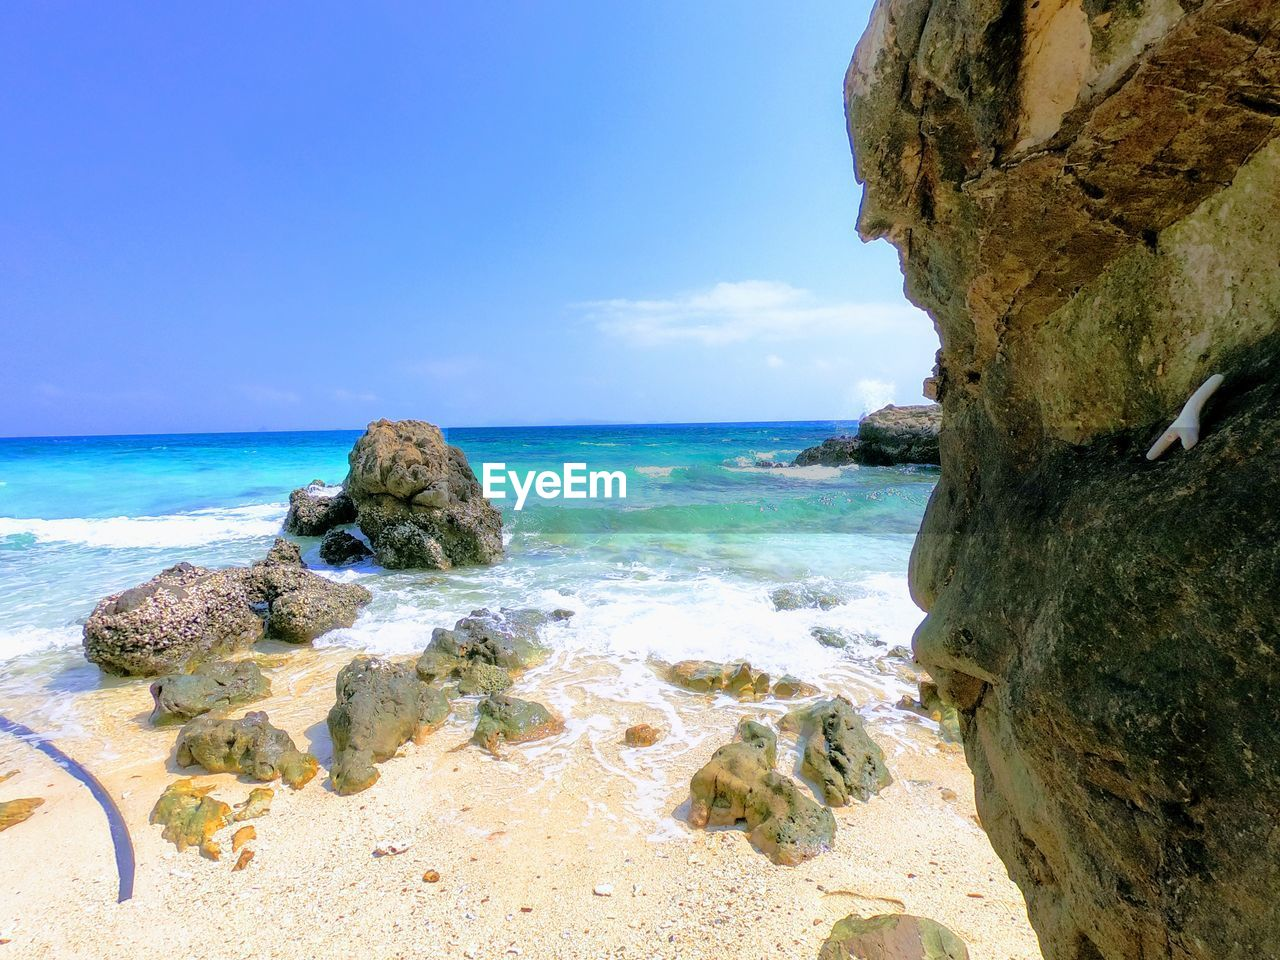 sea, rock - object, sky, beauty in nature, nature, water, horizon over water, day, scenics, blue, tranquil scene, tranquility, no people, sunlight, outdoors